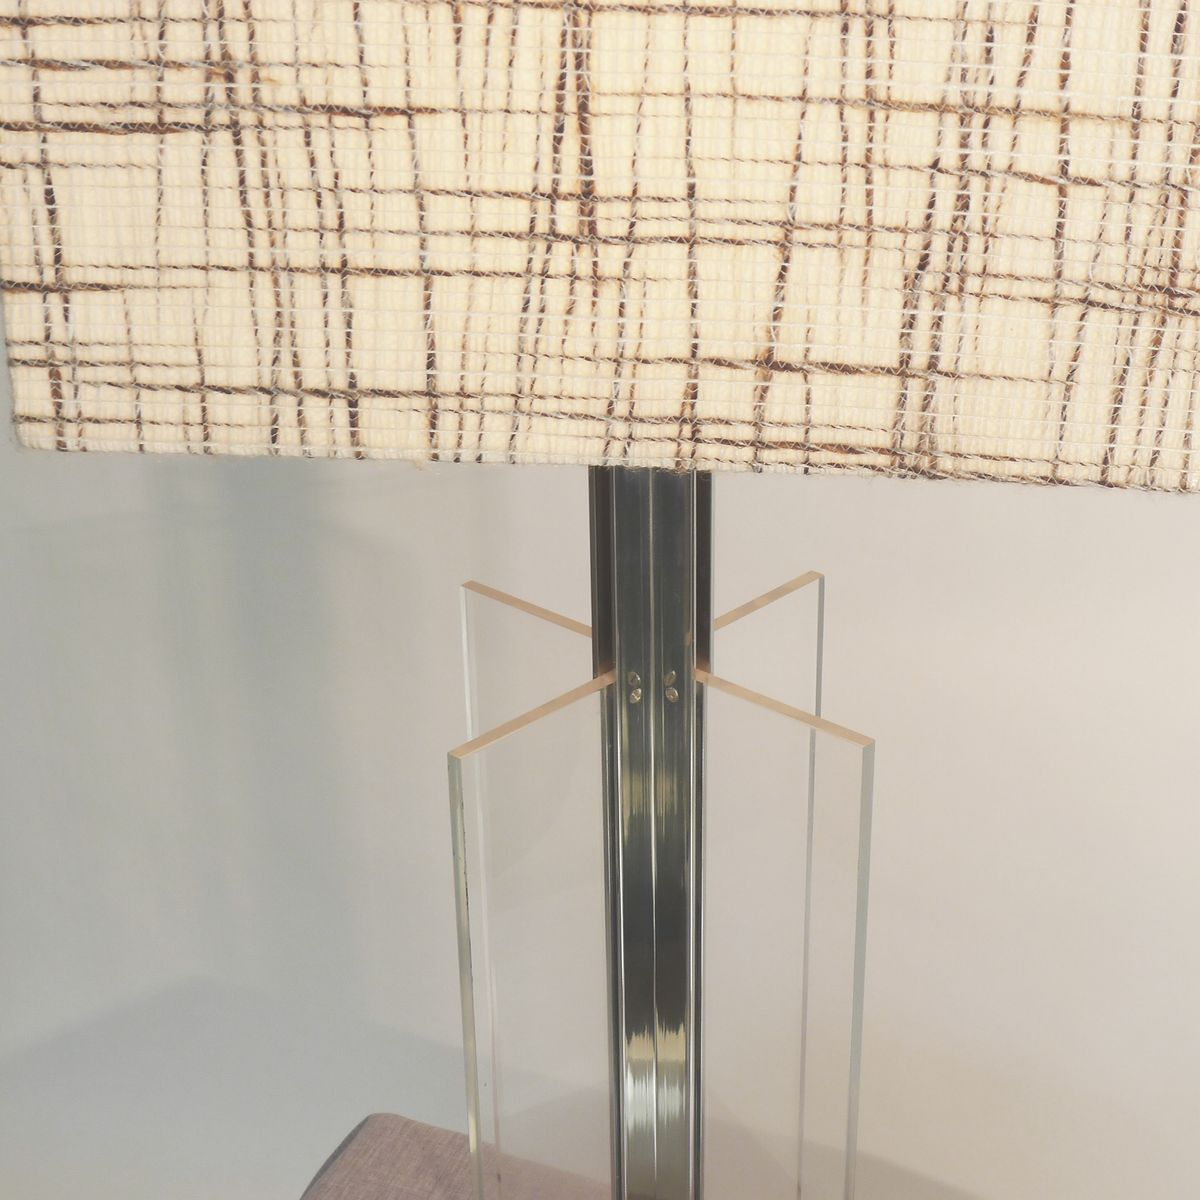 Table Plexiglas Transparent Tall Transparent Plexiglas Table Lamp 1970s For Sale At